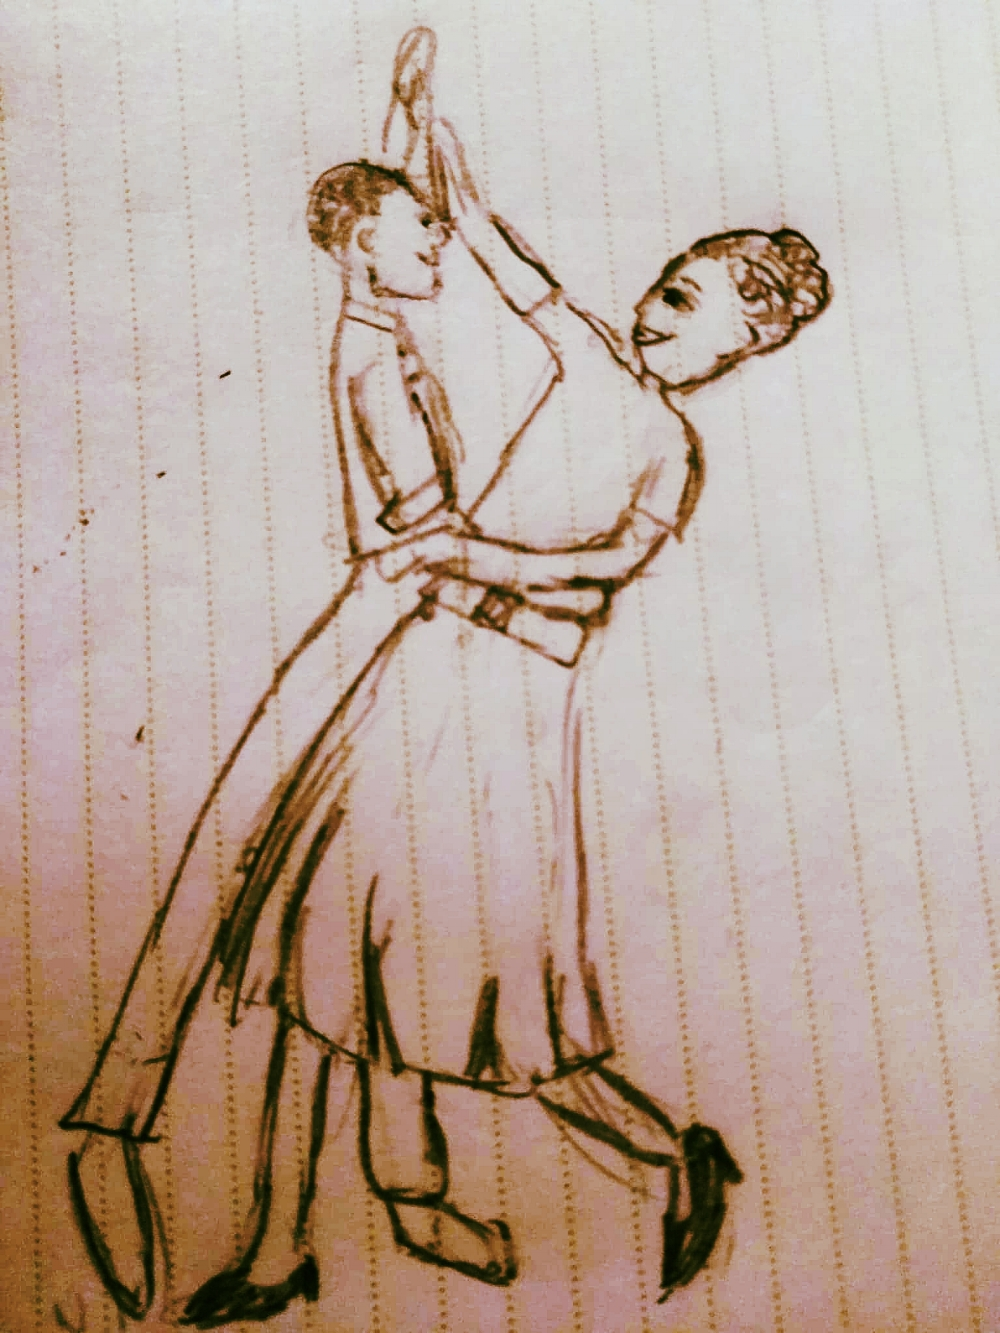 My interpretation of a young Rick and Joan dancing. I asked if they were ever nervous to dance together, and both told me they were too focused on the steps to be nervous!